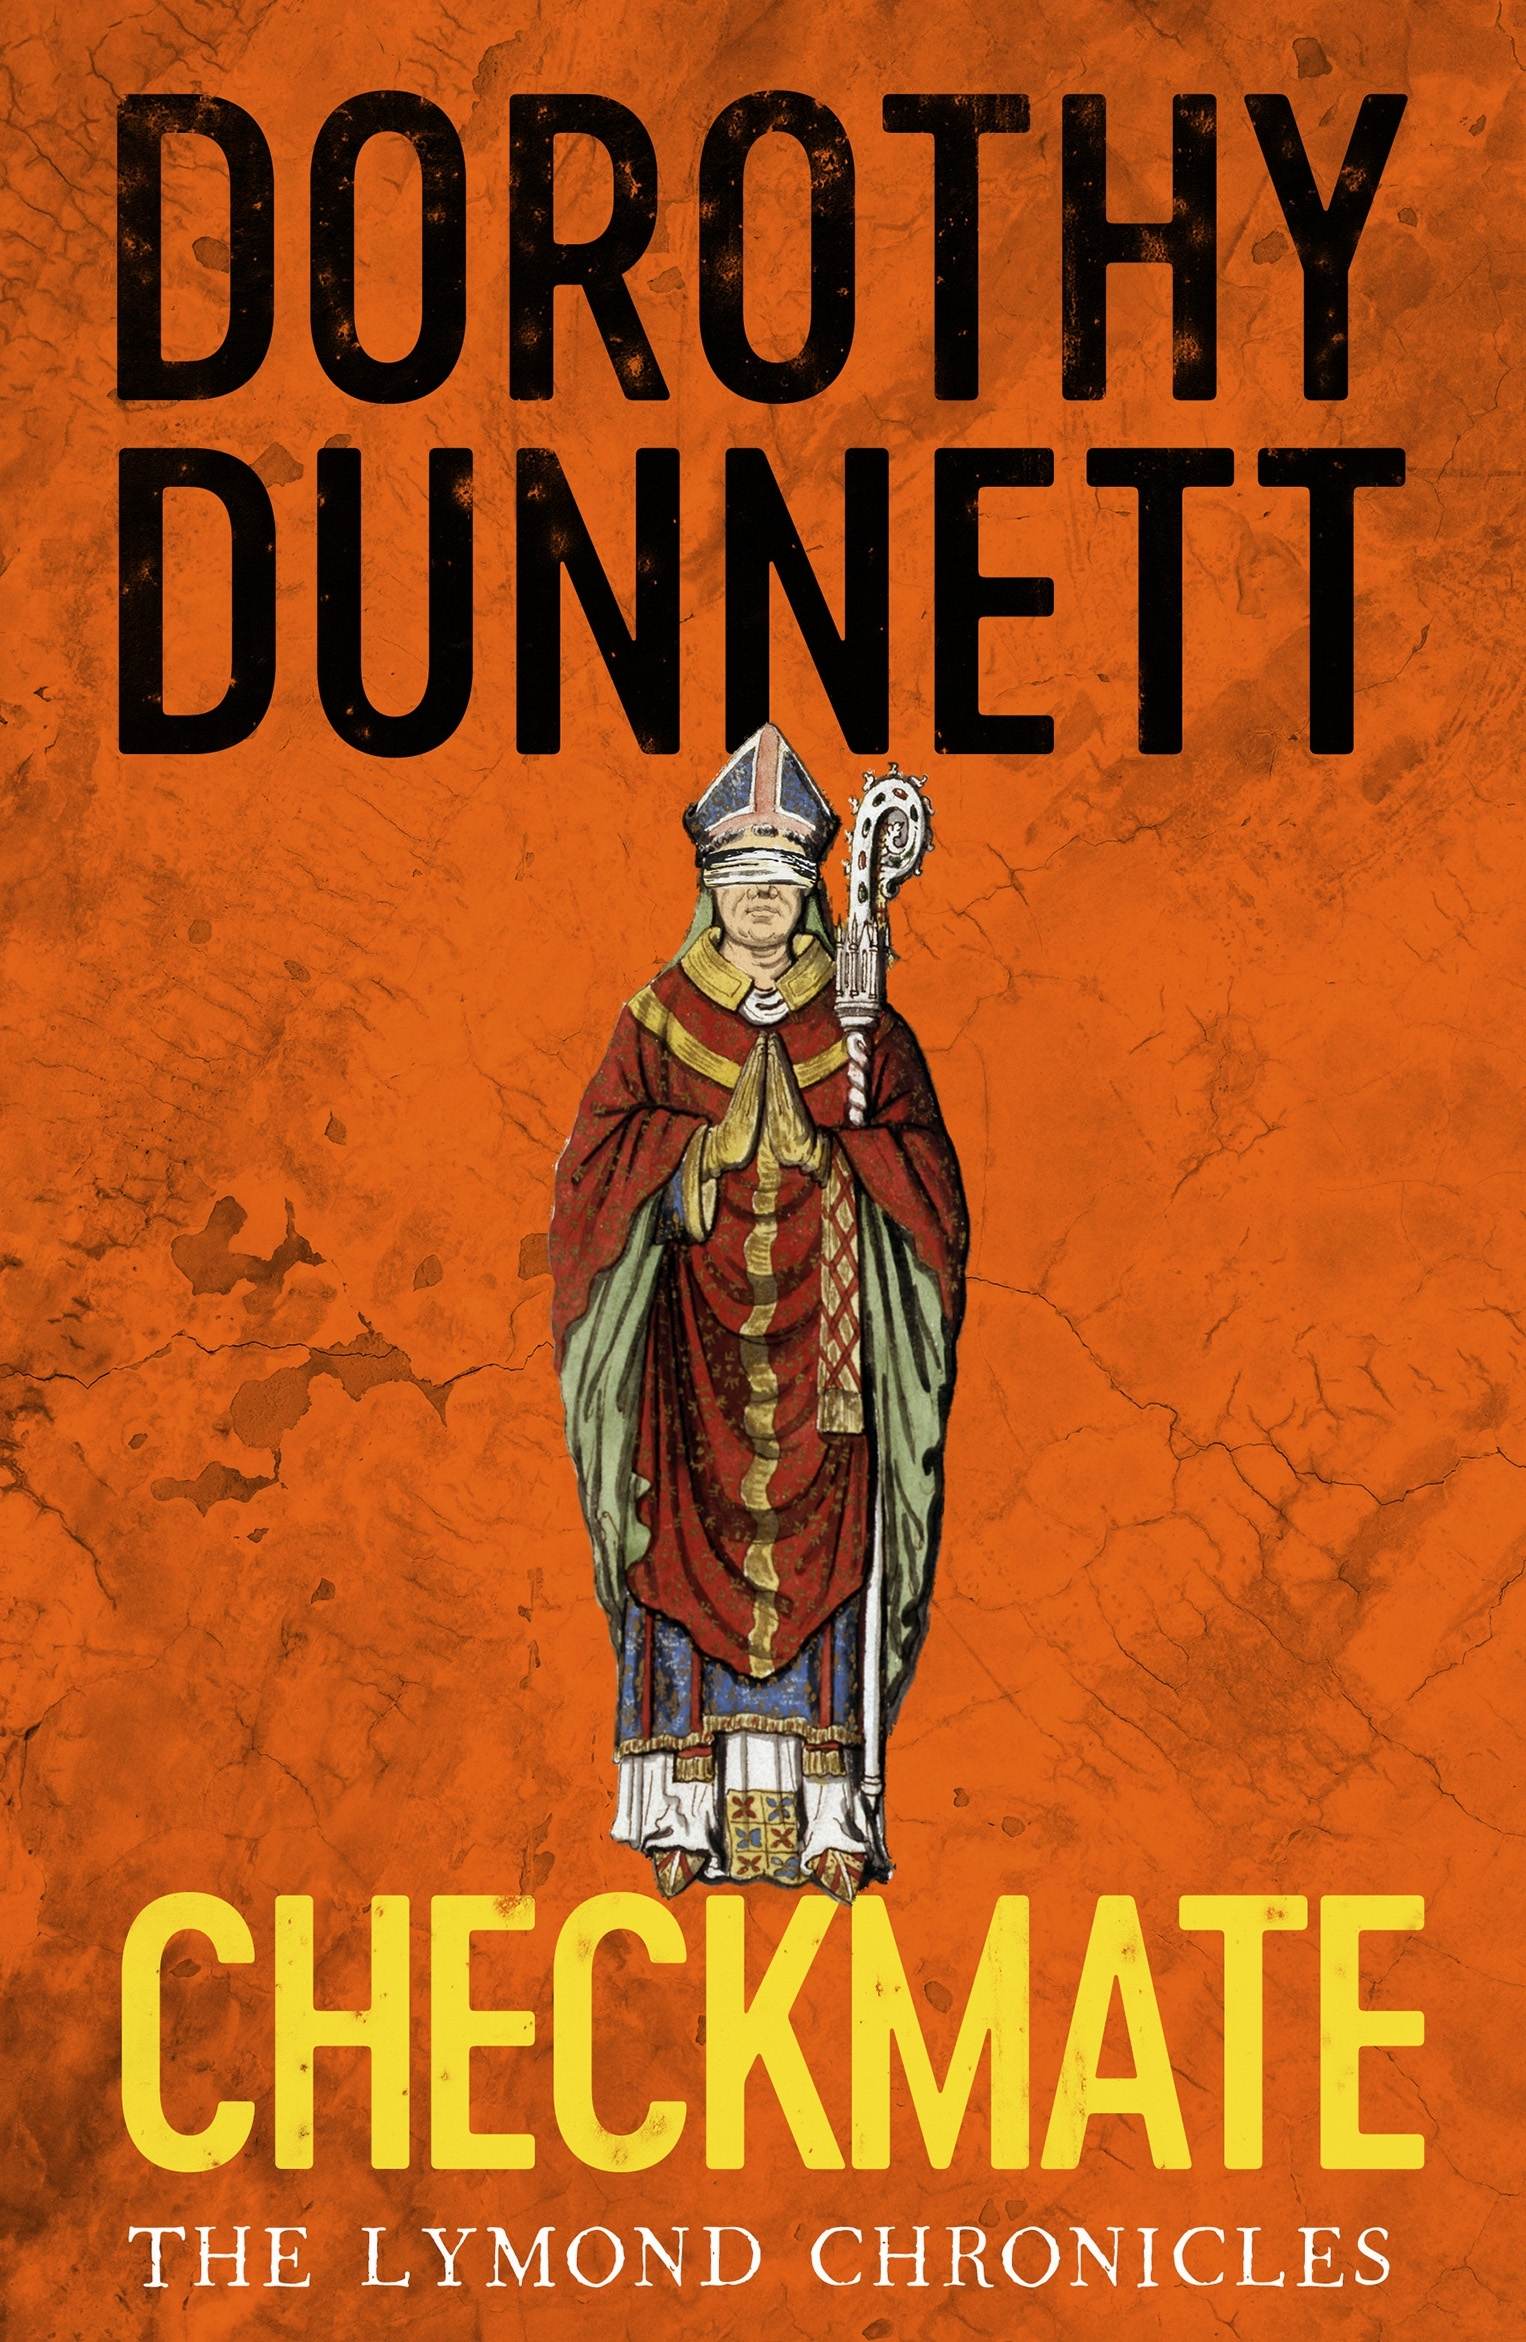 Image result for Checkmate, the last in the Lymond Chronicles by Dorothy Dunnett